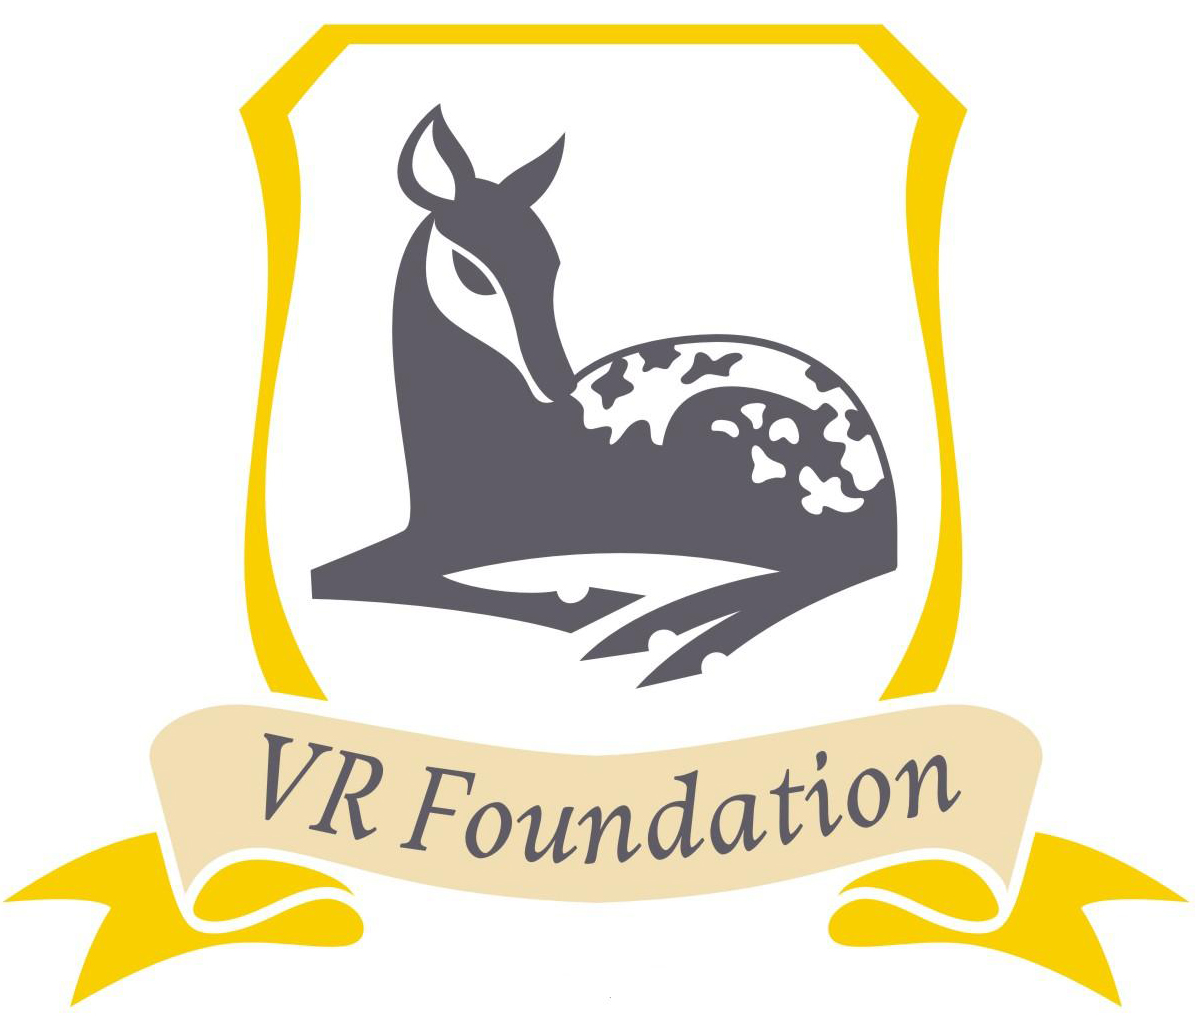 VR_Foundation.jpg